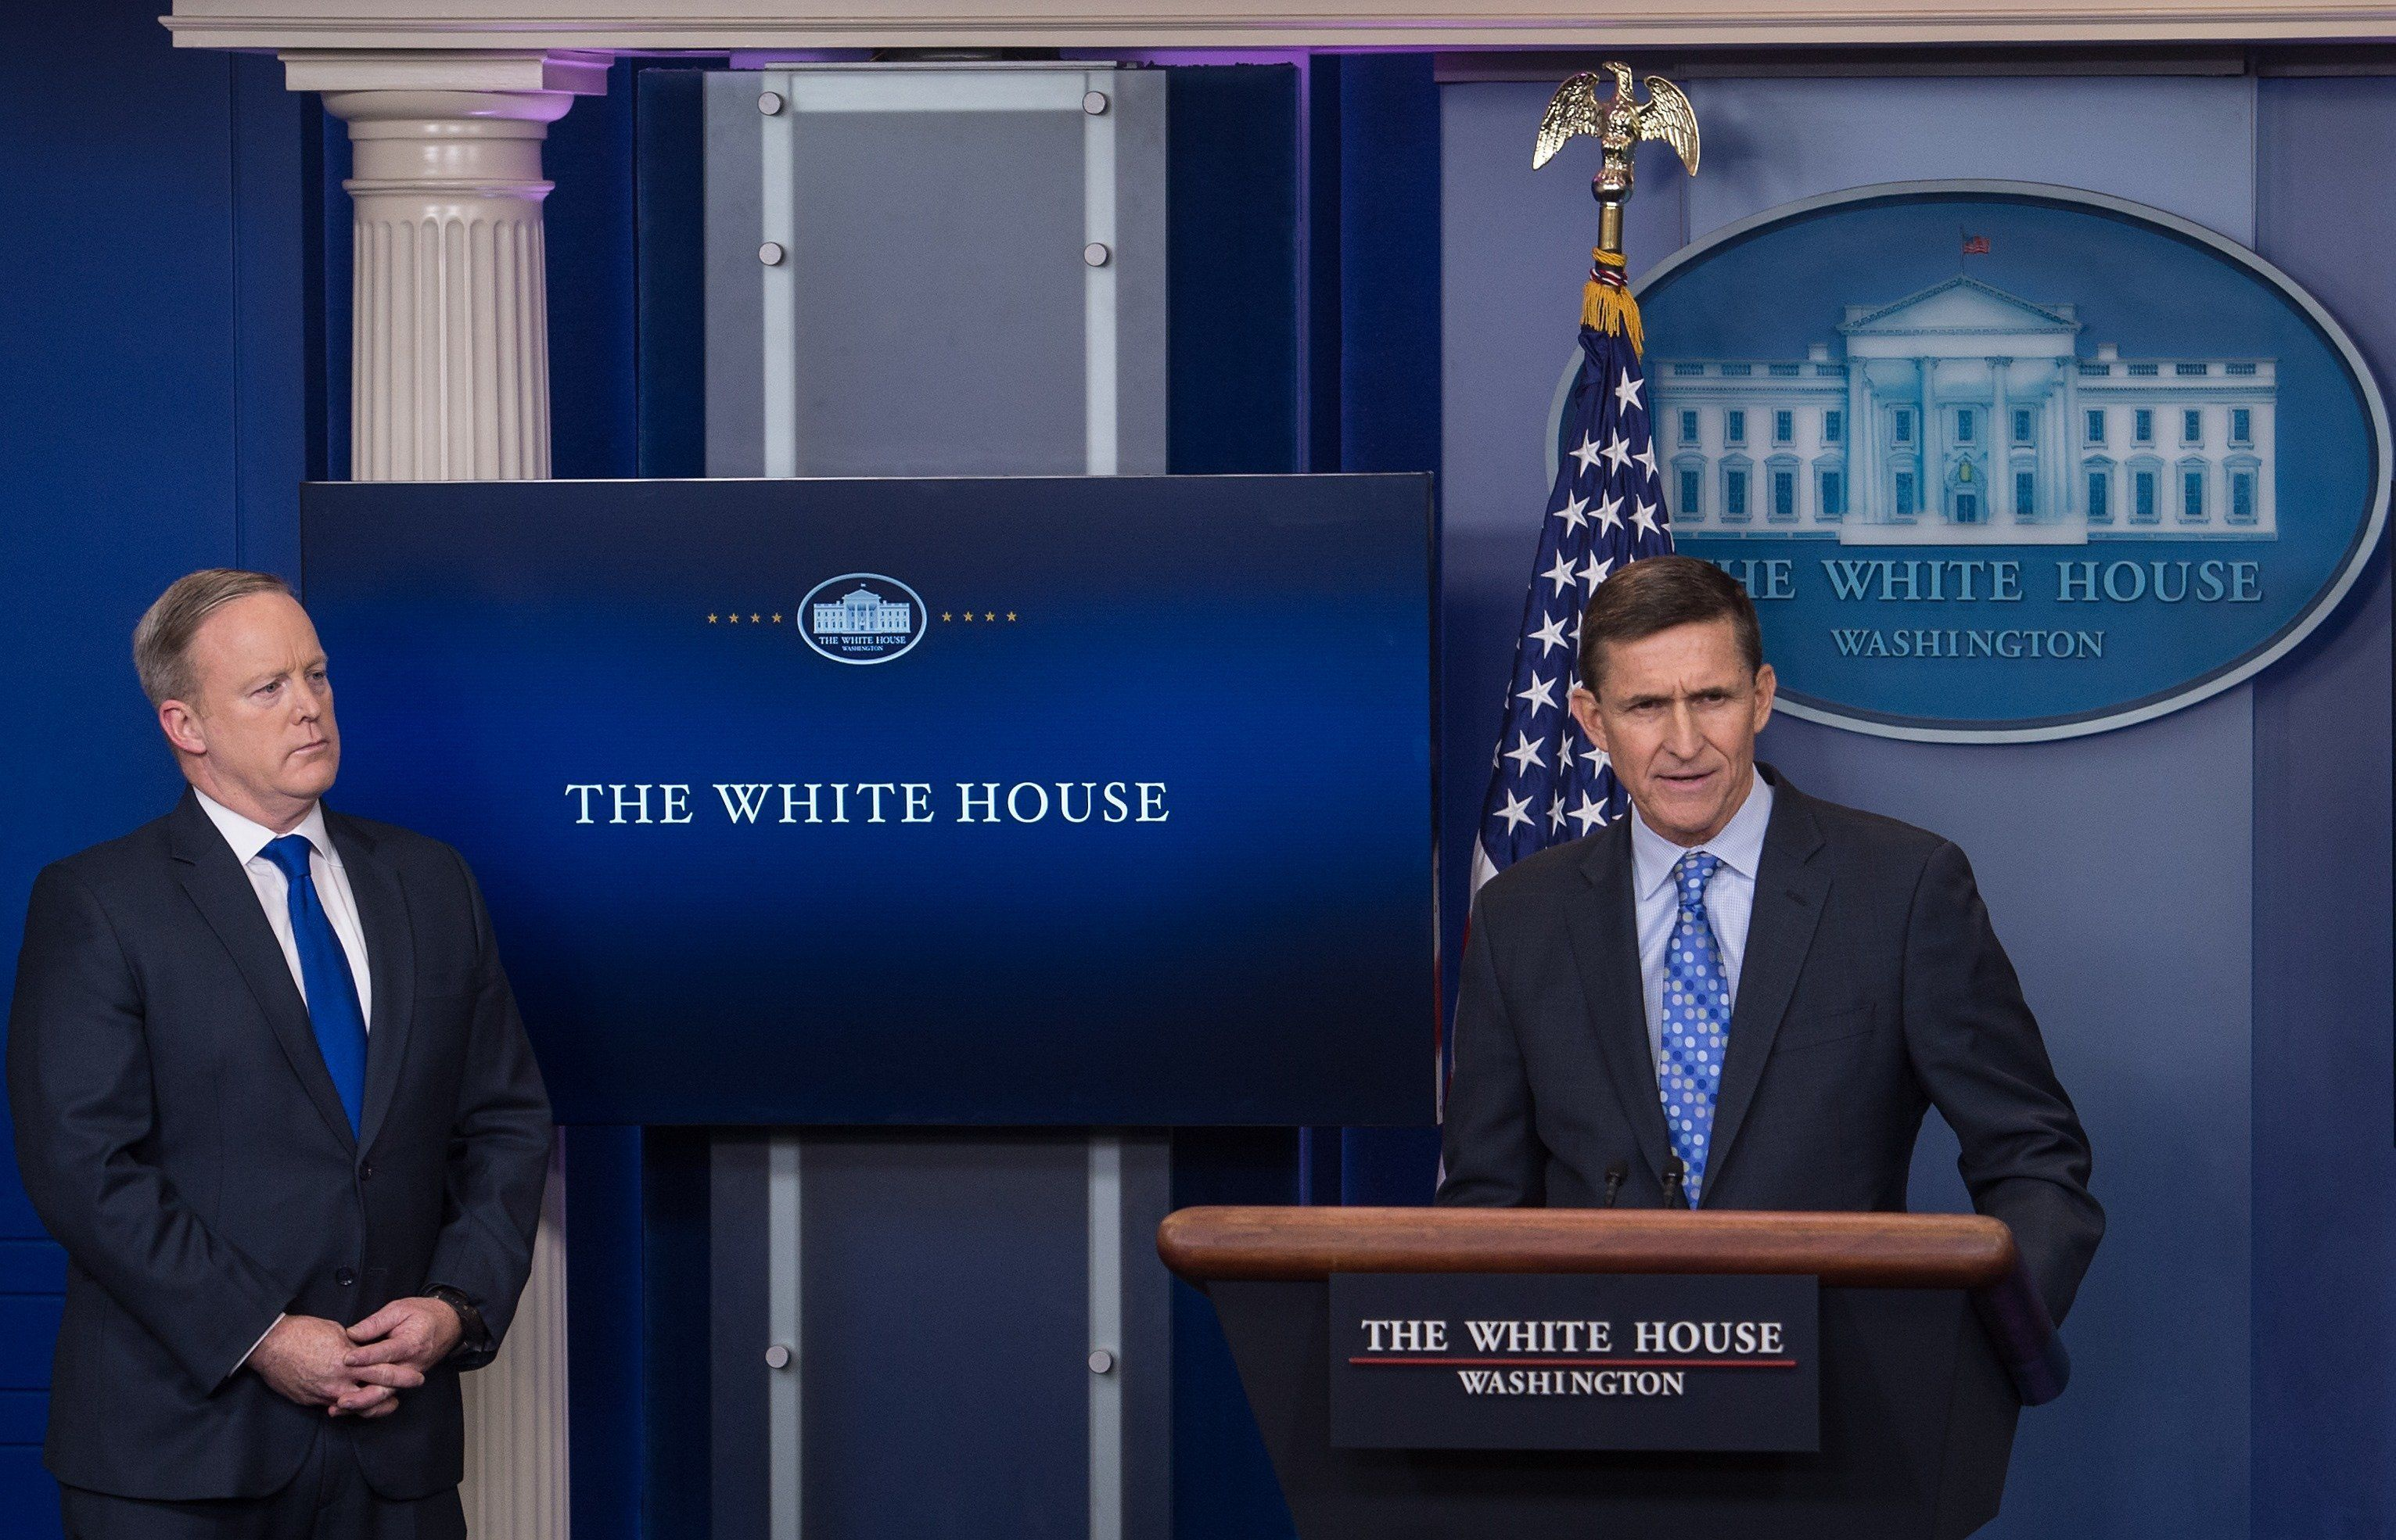 US National Security Adviser Mike Flynn speaks during the daily press briefing as Press Secretary Sean Spicer (L) looks on at the White House in Washington, DC, on February 1, 2017. Flynn signaled a more hardline American stance on Iran Wednesday, condemning a recent missile test and declaring he was 'officially putting Iran on notice.' / AFP / NICHOLAS KAMM        (Photo credit should read NICHOLAS KAMM/AFP/Getty Images)